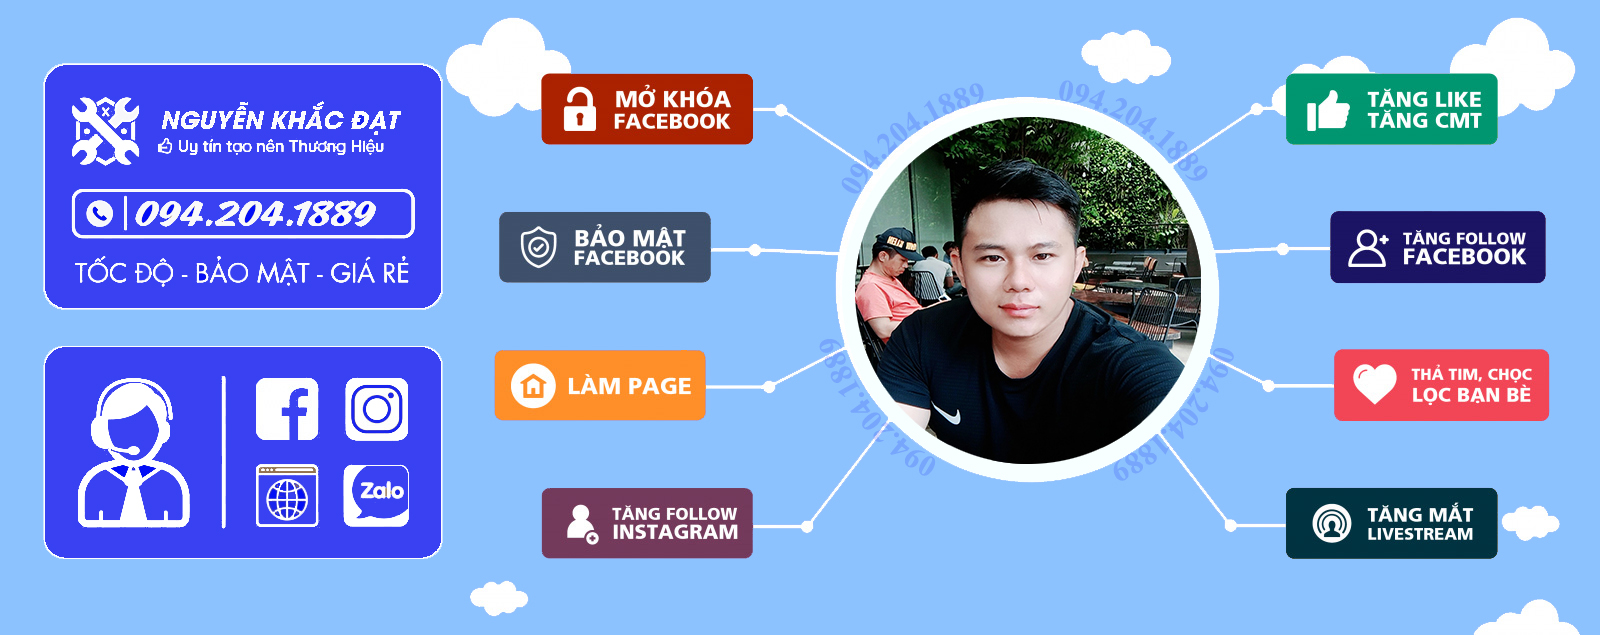 Banner dịch vụ facebook